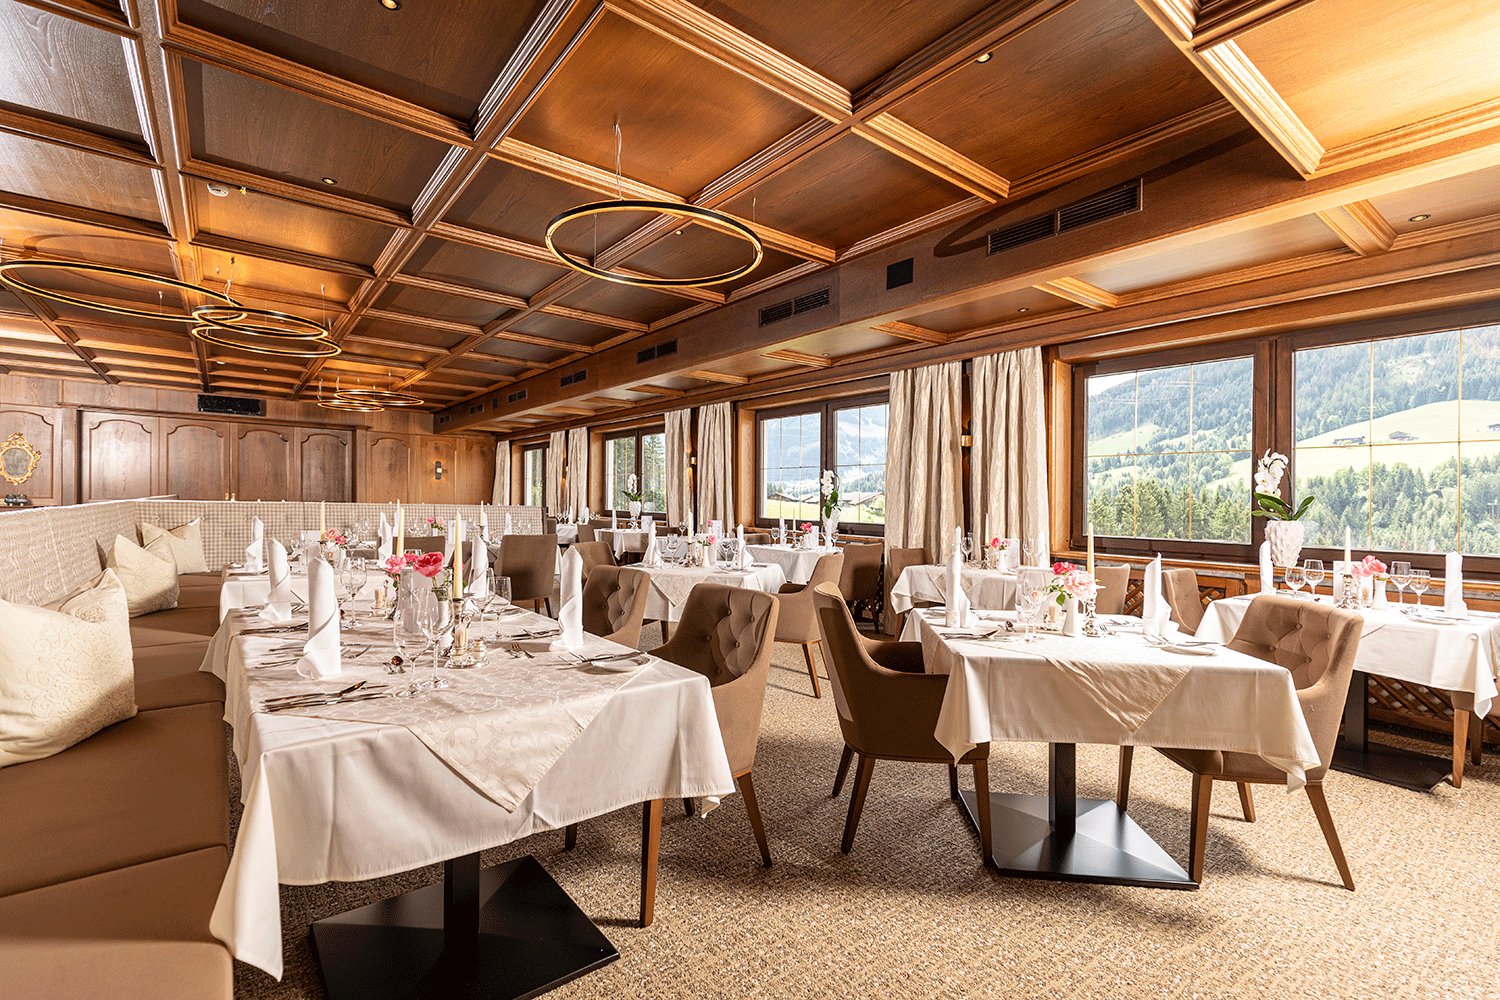 Restaurant im Wellnesshotel Alpacherhof in Tirol